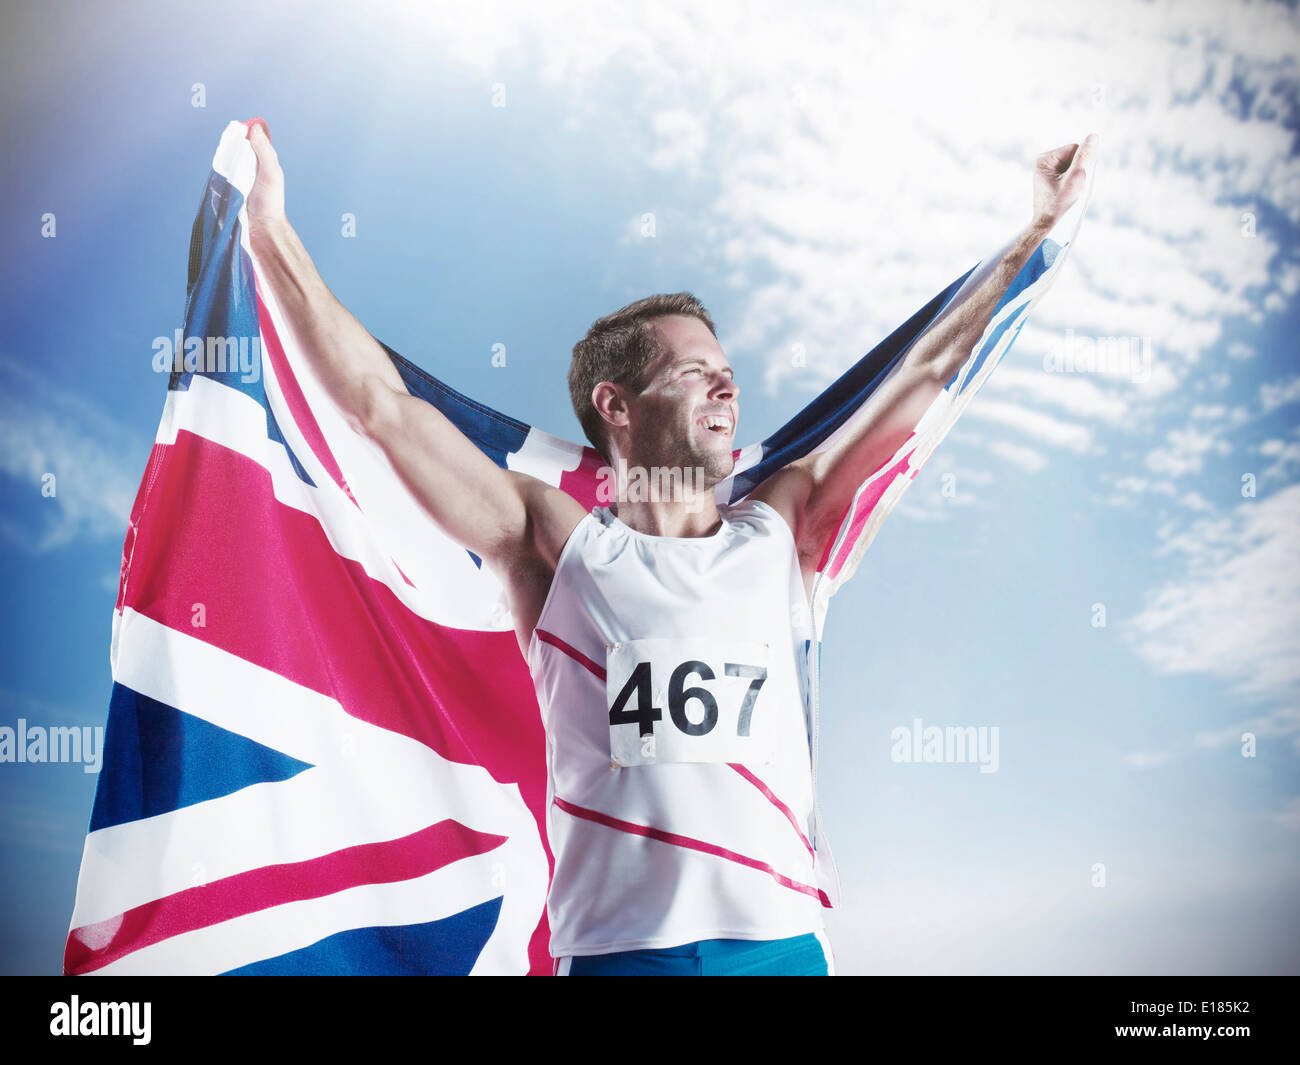 Track and field athlete holding British flag and celebrating Stock Photo